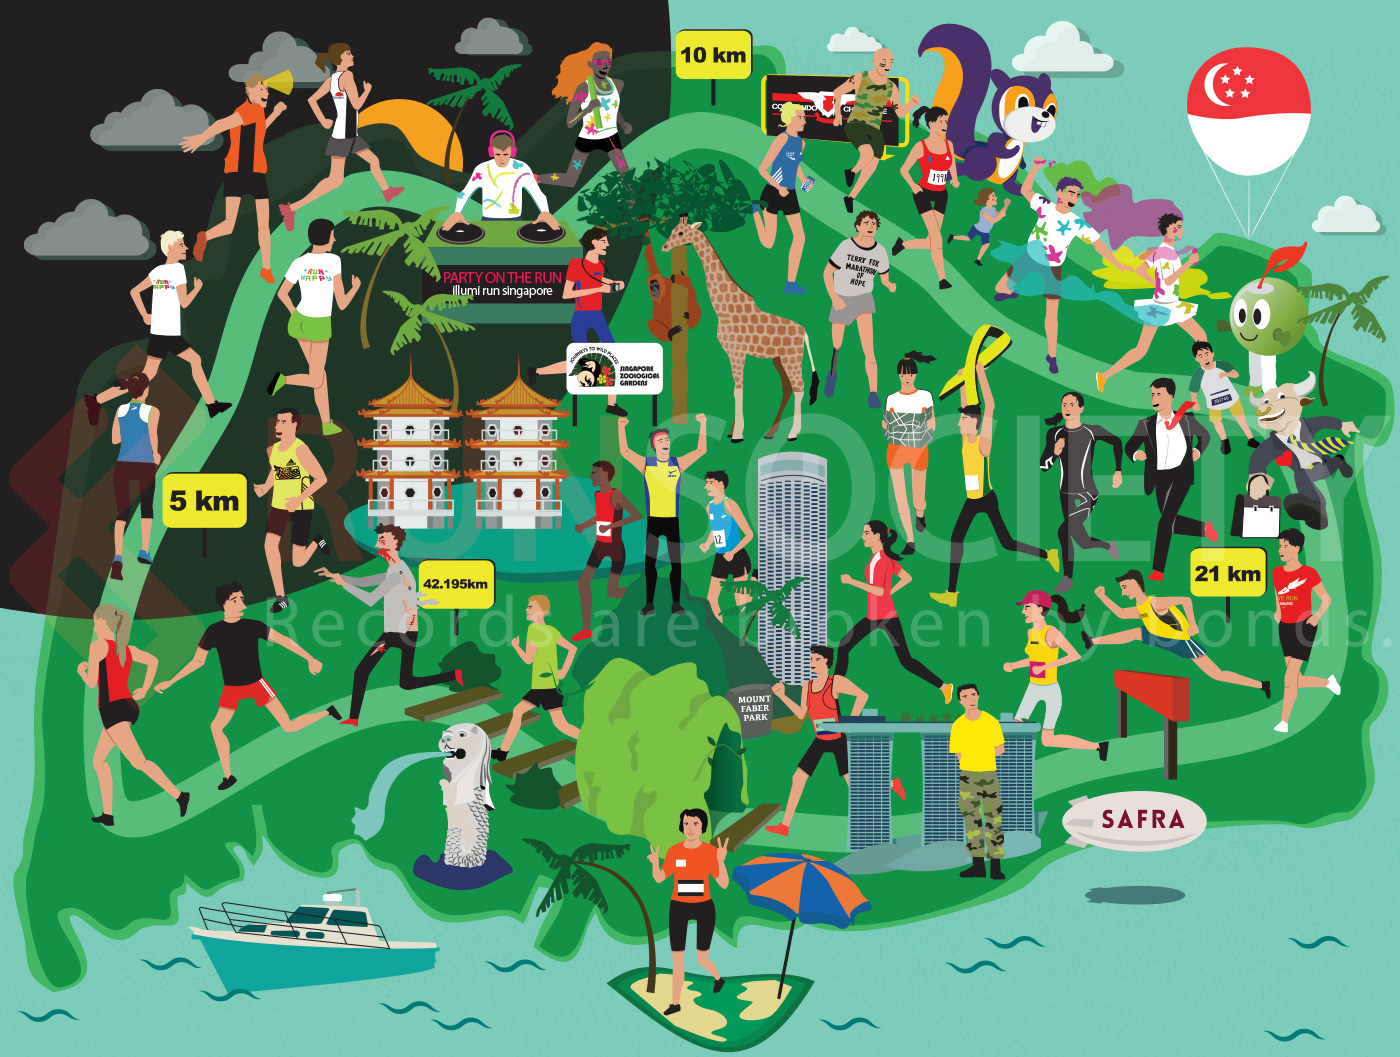 Singapore Popular Running Events at a Glance